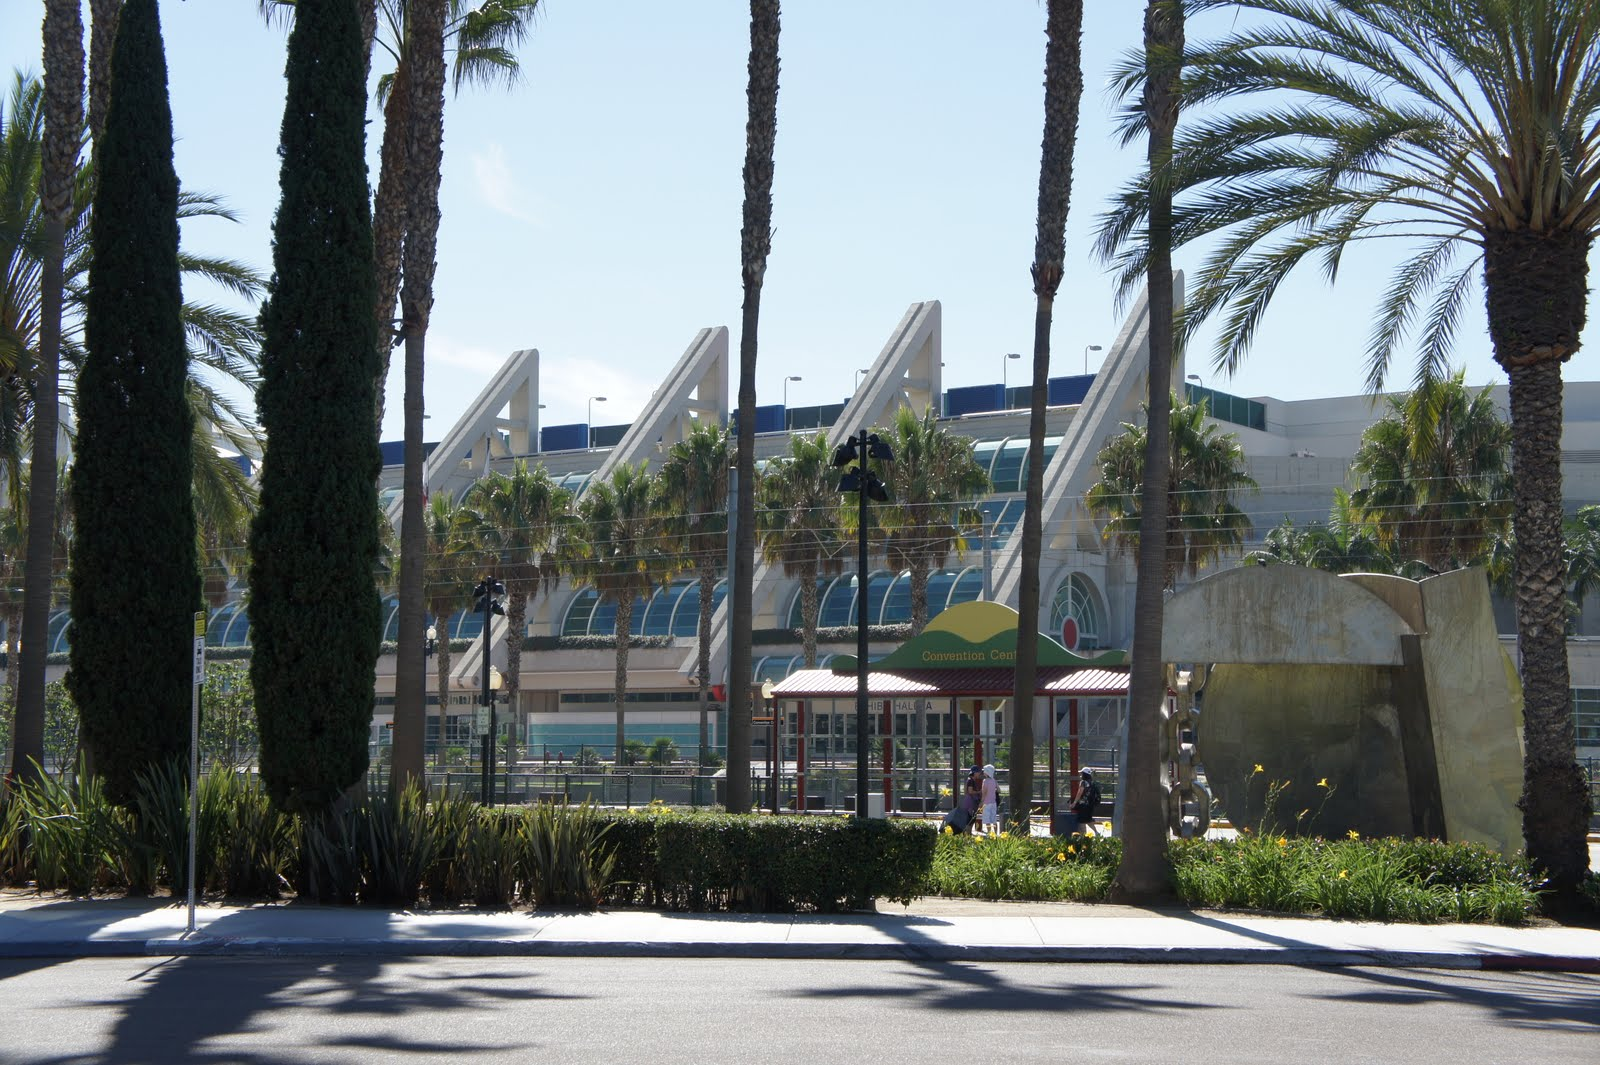 Hotels to Help Finance Expansion of the San Diego Convention Center